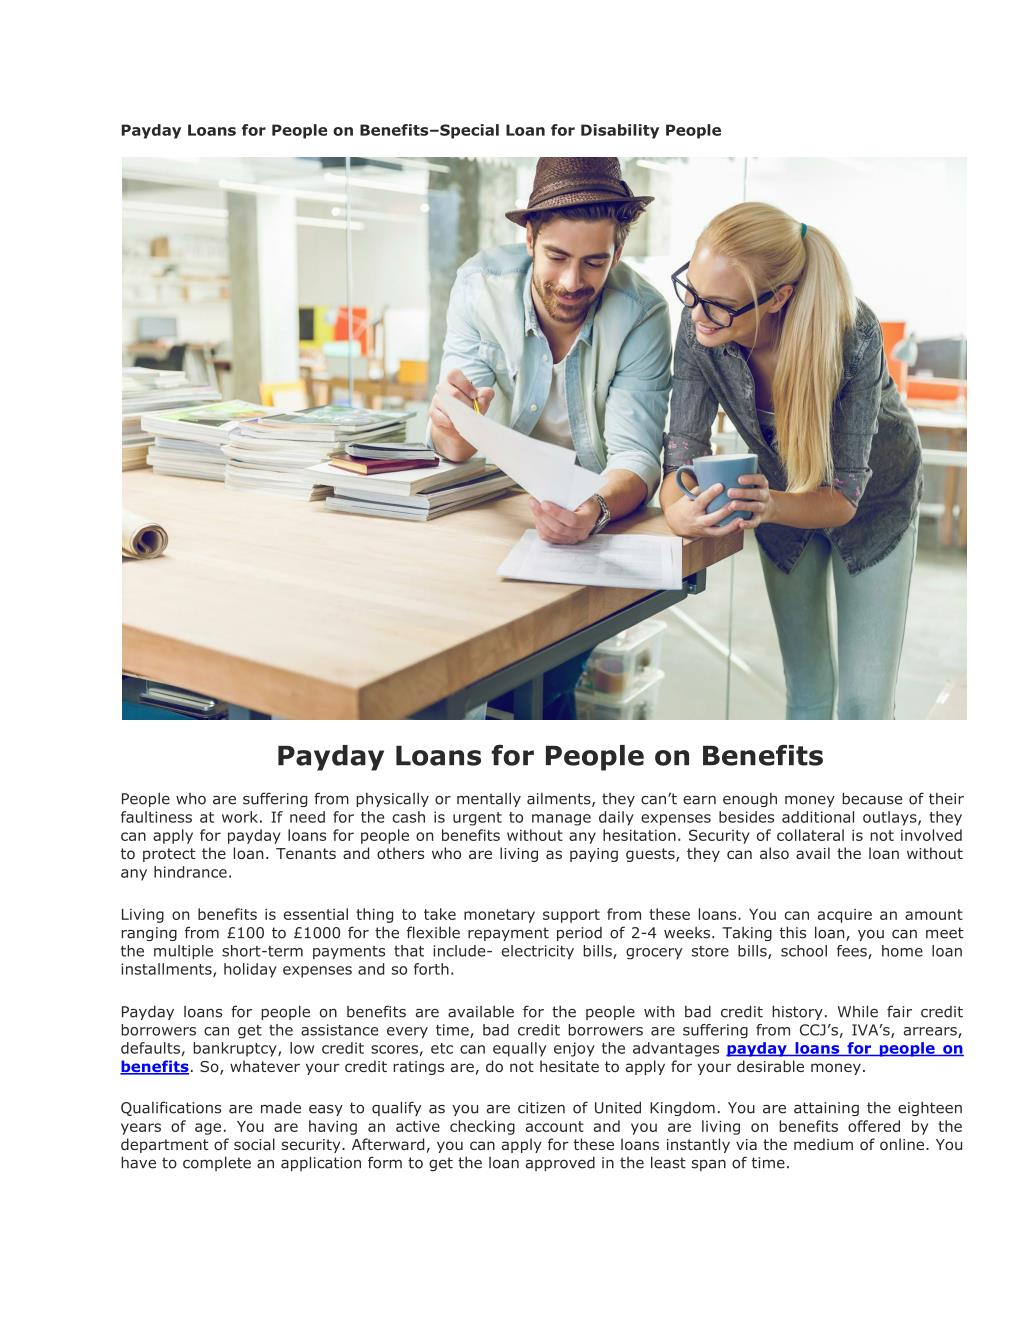 Loans For People On Disability With Bad Credit >> Ppt Payday Loans For People On Benefits Powerpoint Presentation